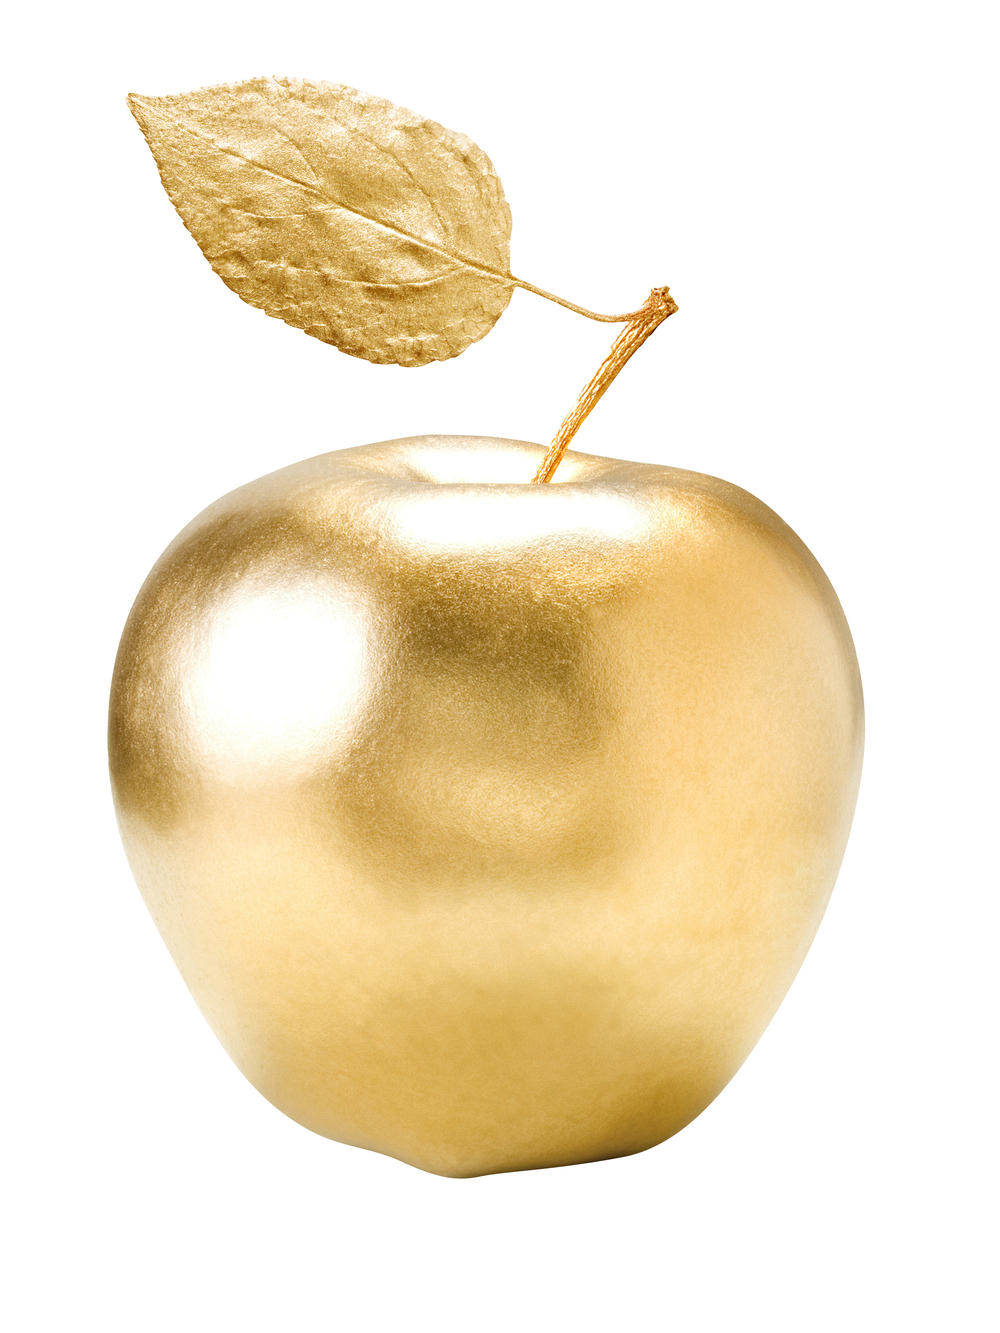 08_golden apple_01.jpg